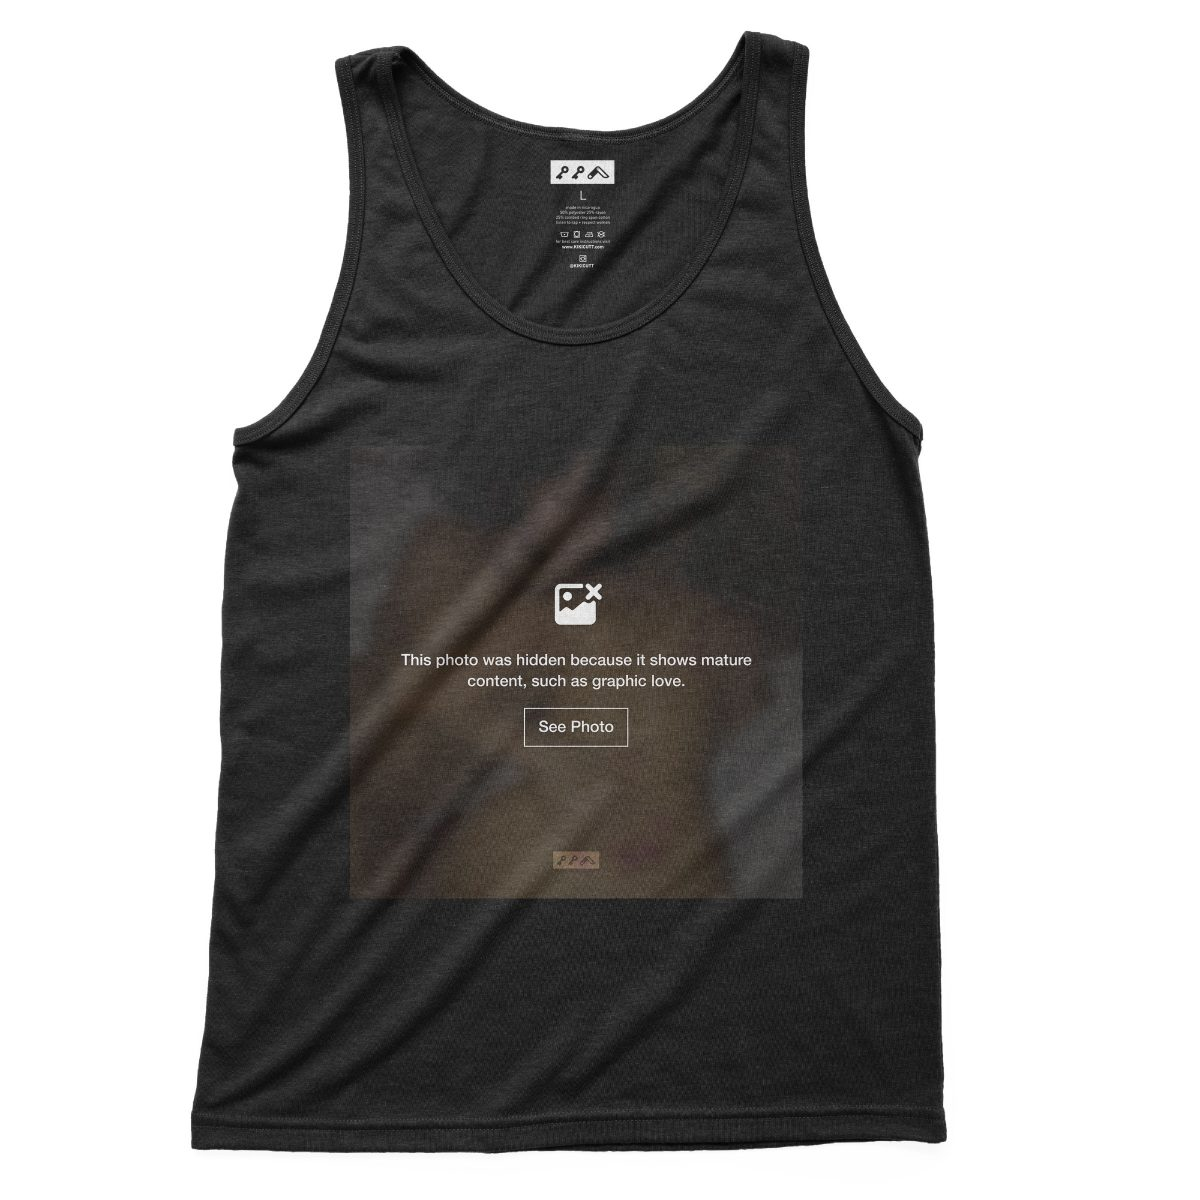 """GRAPHIC LOVE"" sexual content tank tops in soft black tri-blend"